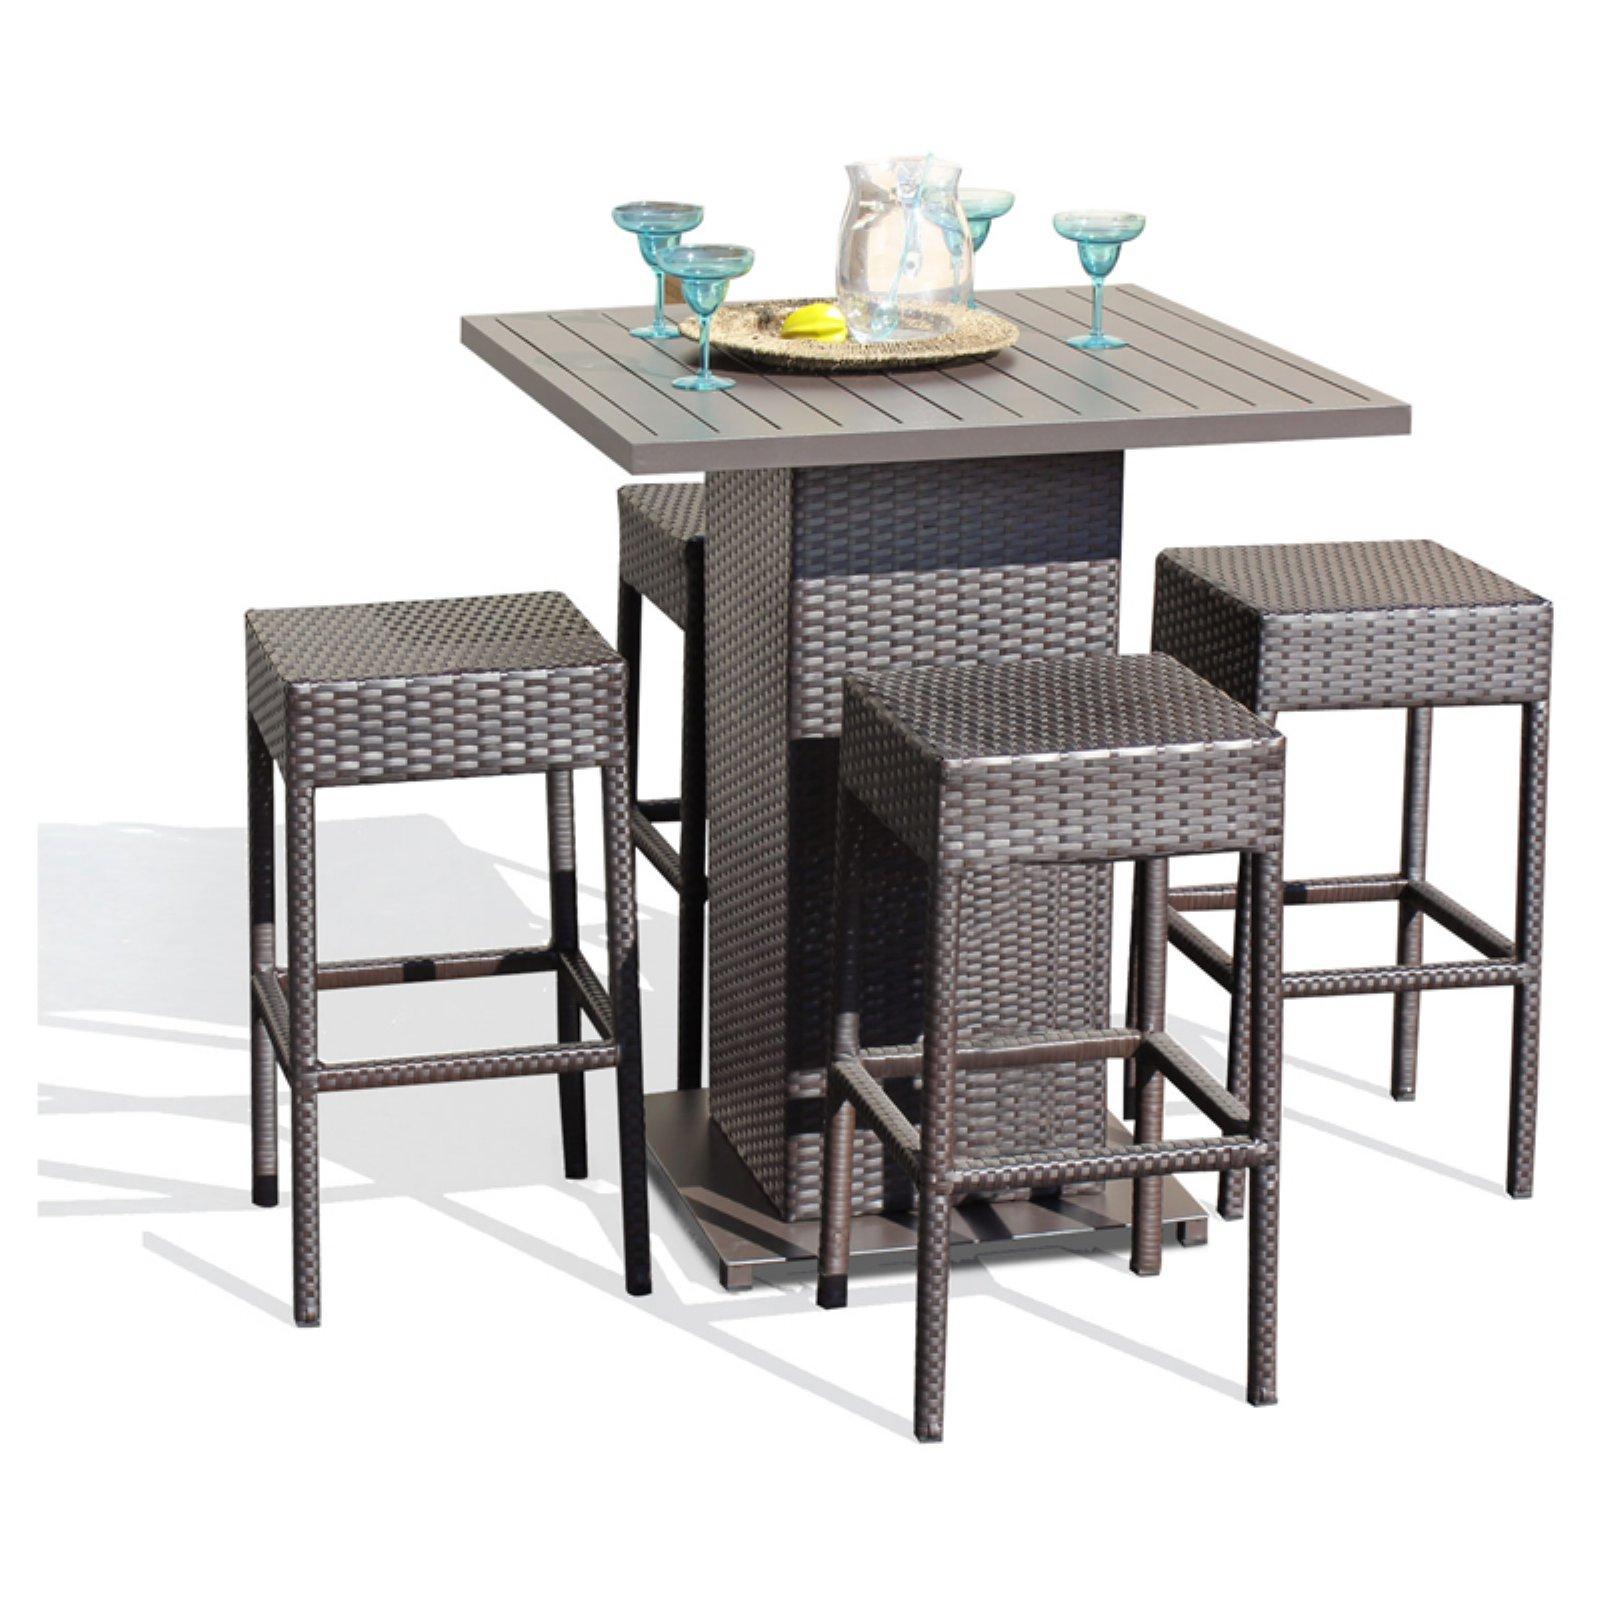 TK Classics Napa Wicker 5 Piece Outdoor Pub Table Set